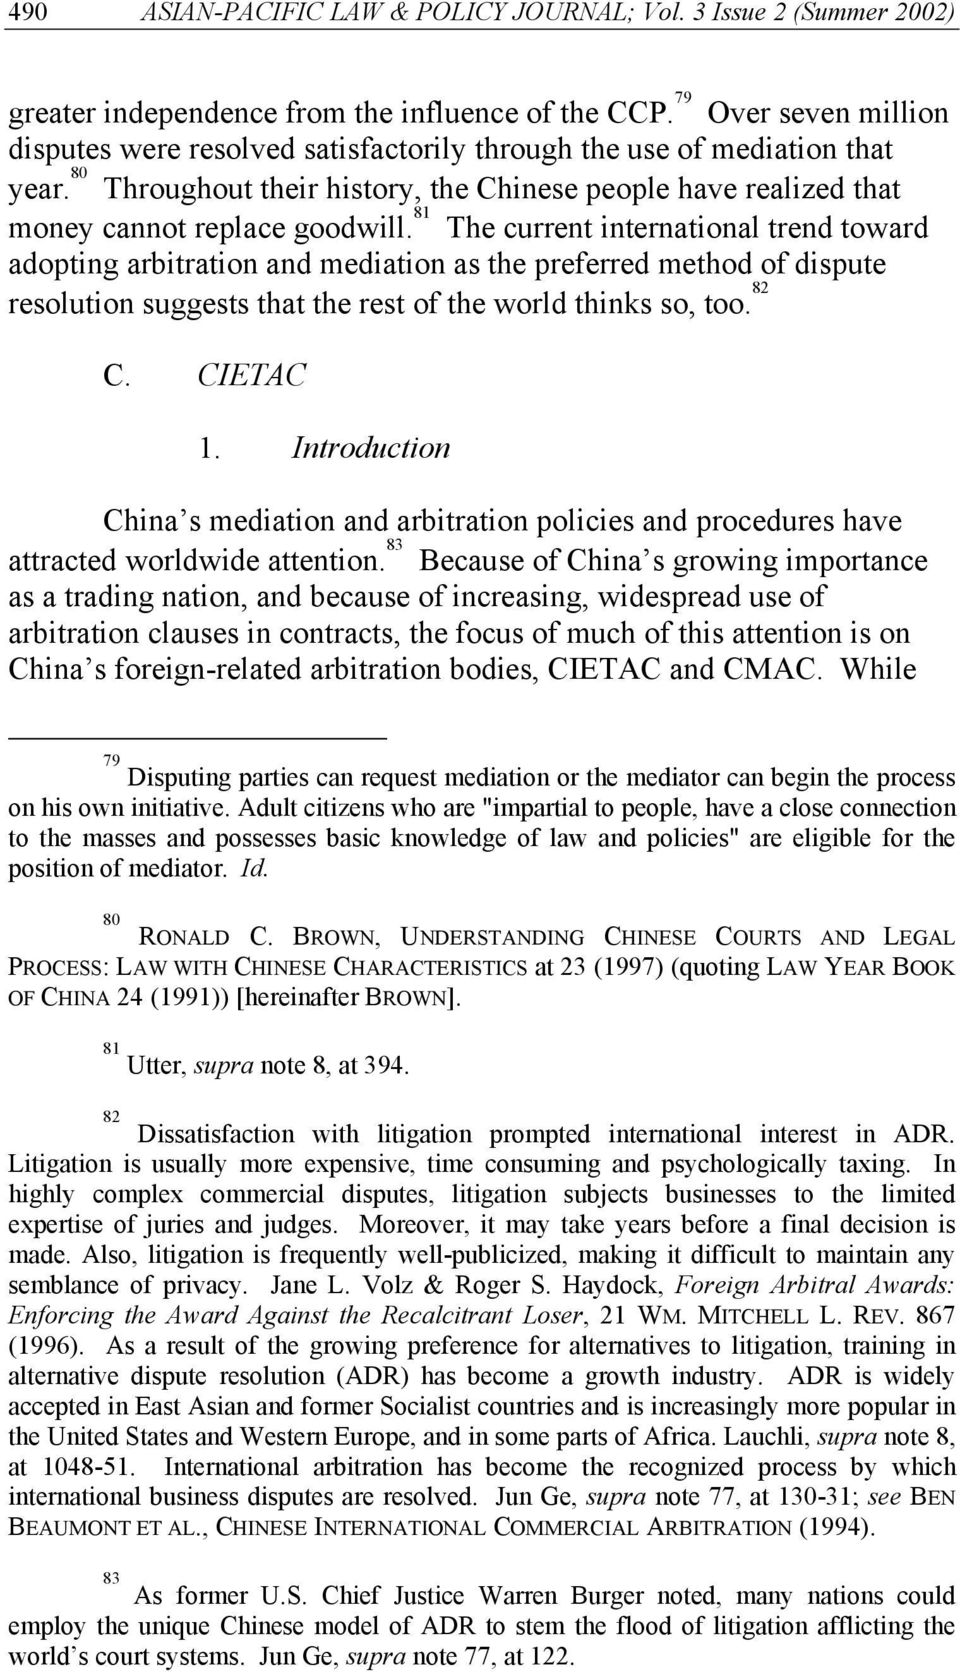 81 The current international trend toward adopting arbitration and mediation as the preferred method of dispute resolution suggests that the rest of the world thinks so, too. 82 C. CIETAC 1.